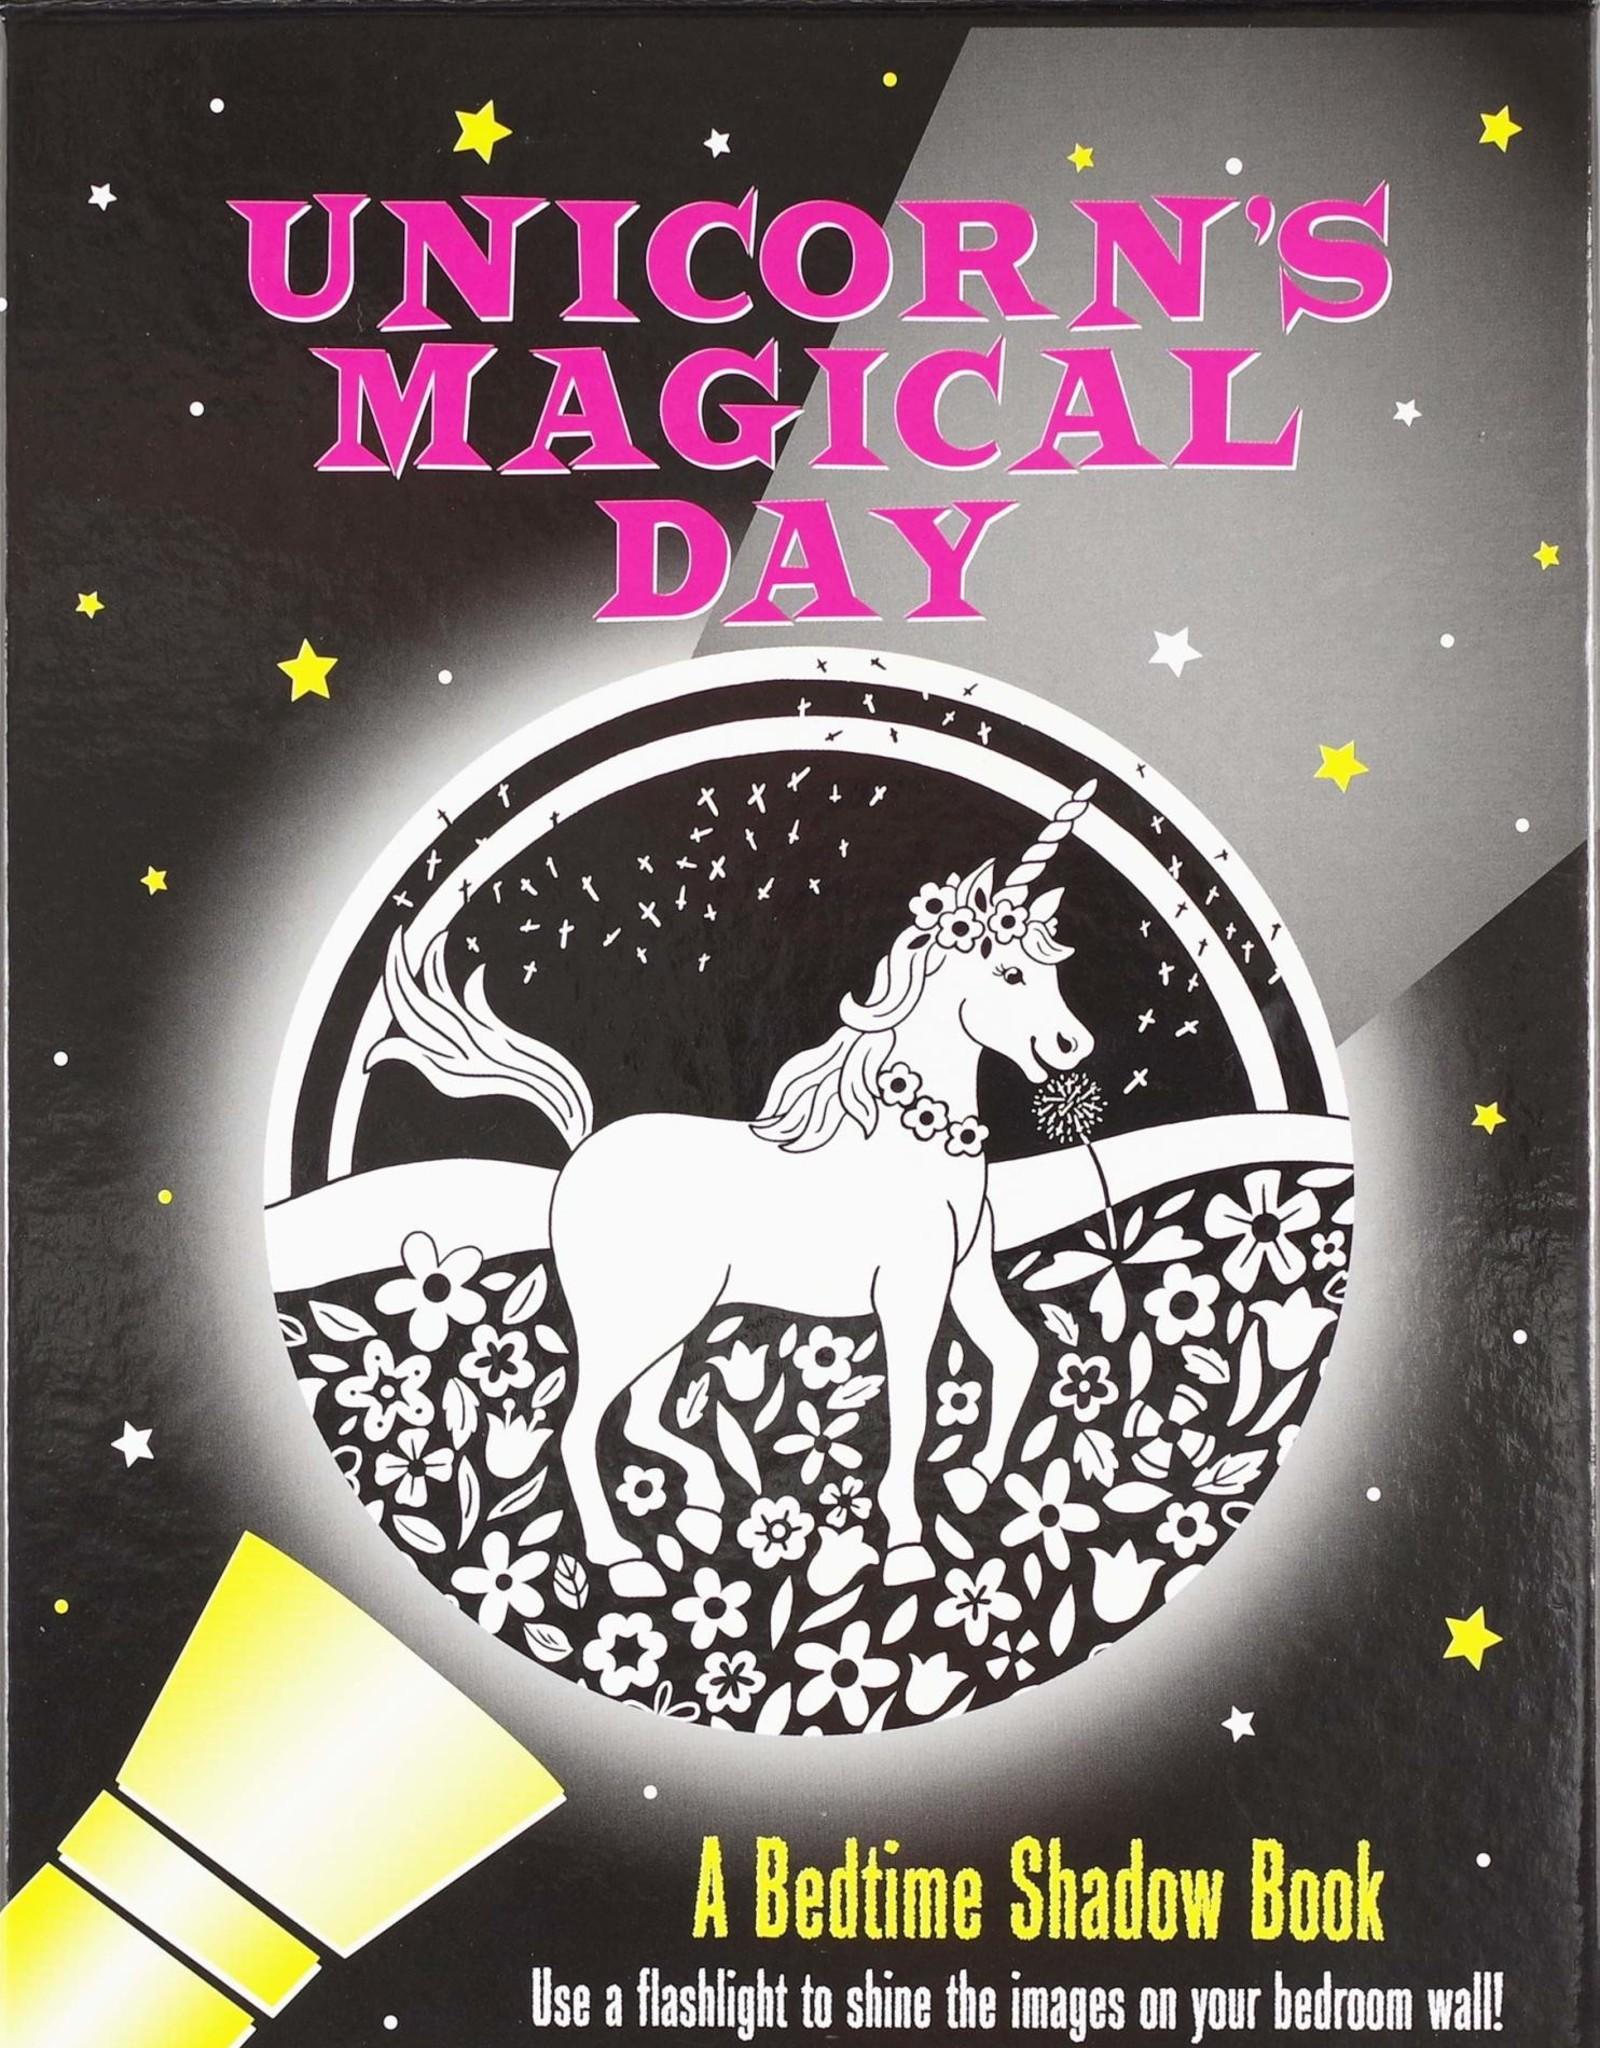 Peter Pauper Press UNICORN'S MAGICAL DAY BEDTIME SHADOW BOOK